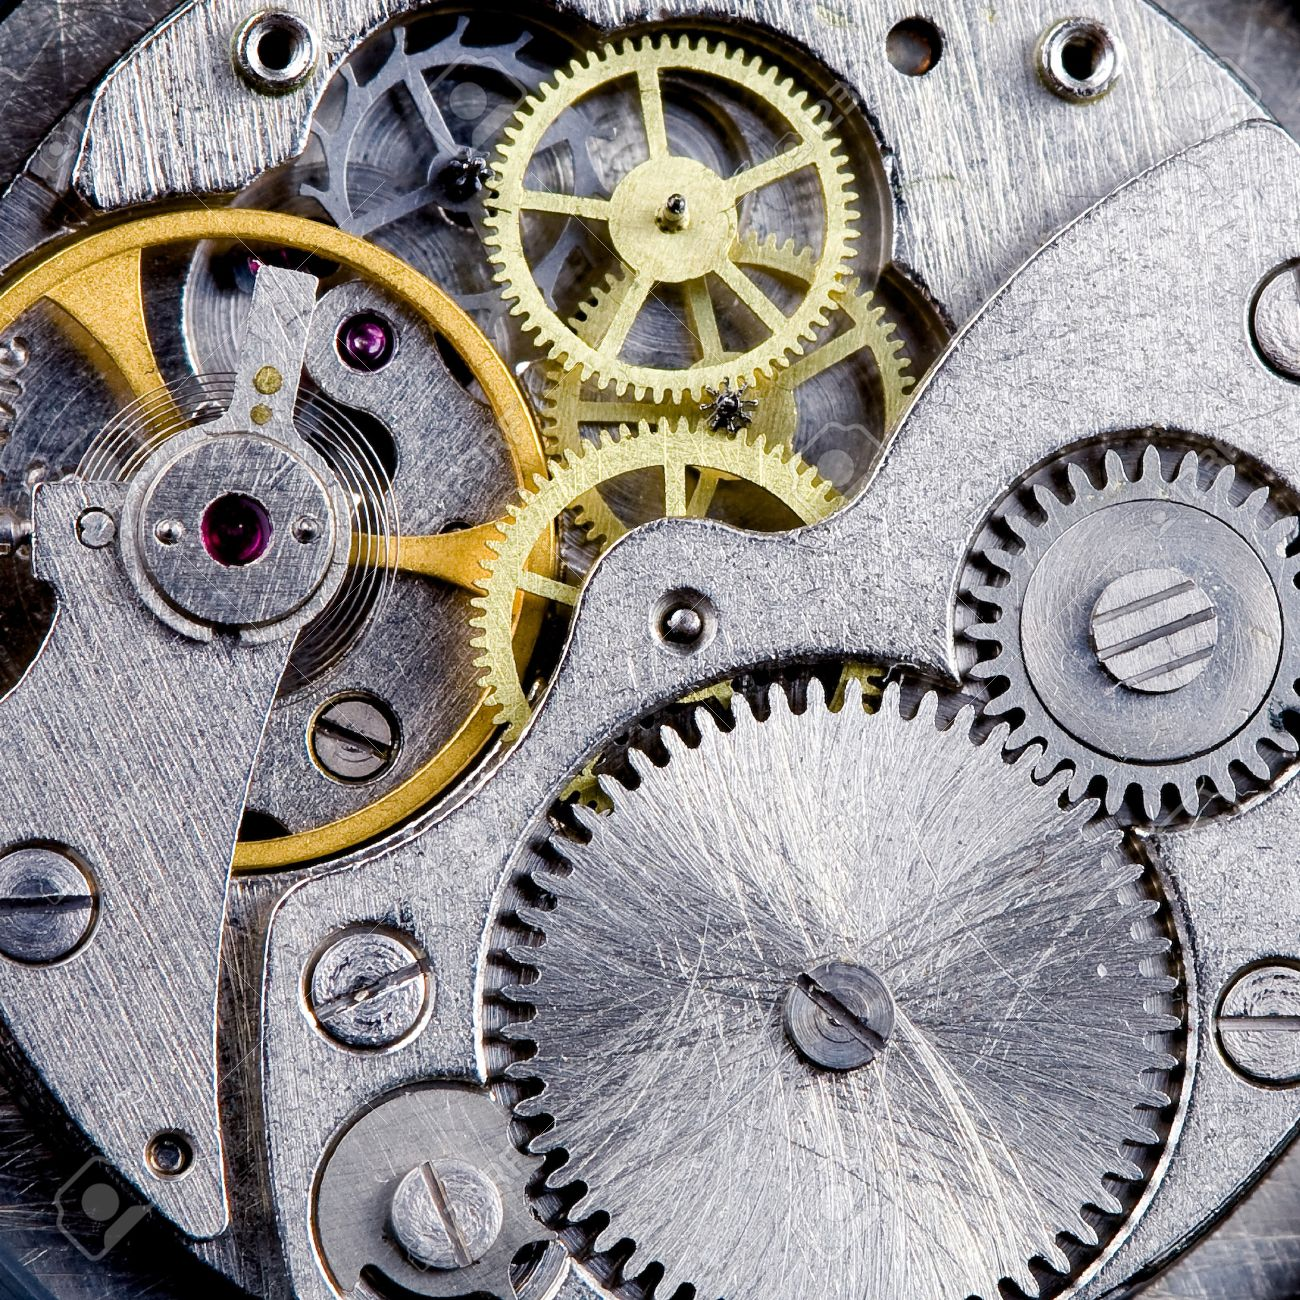 Part of clockwork with gears, spring, ruby. Steel and brass. Stock Photo - 8911868